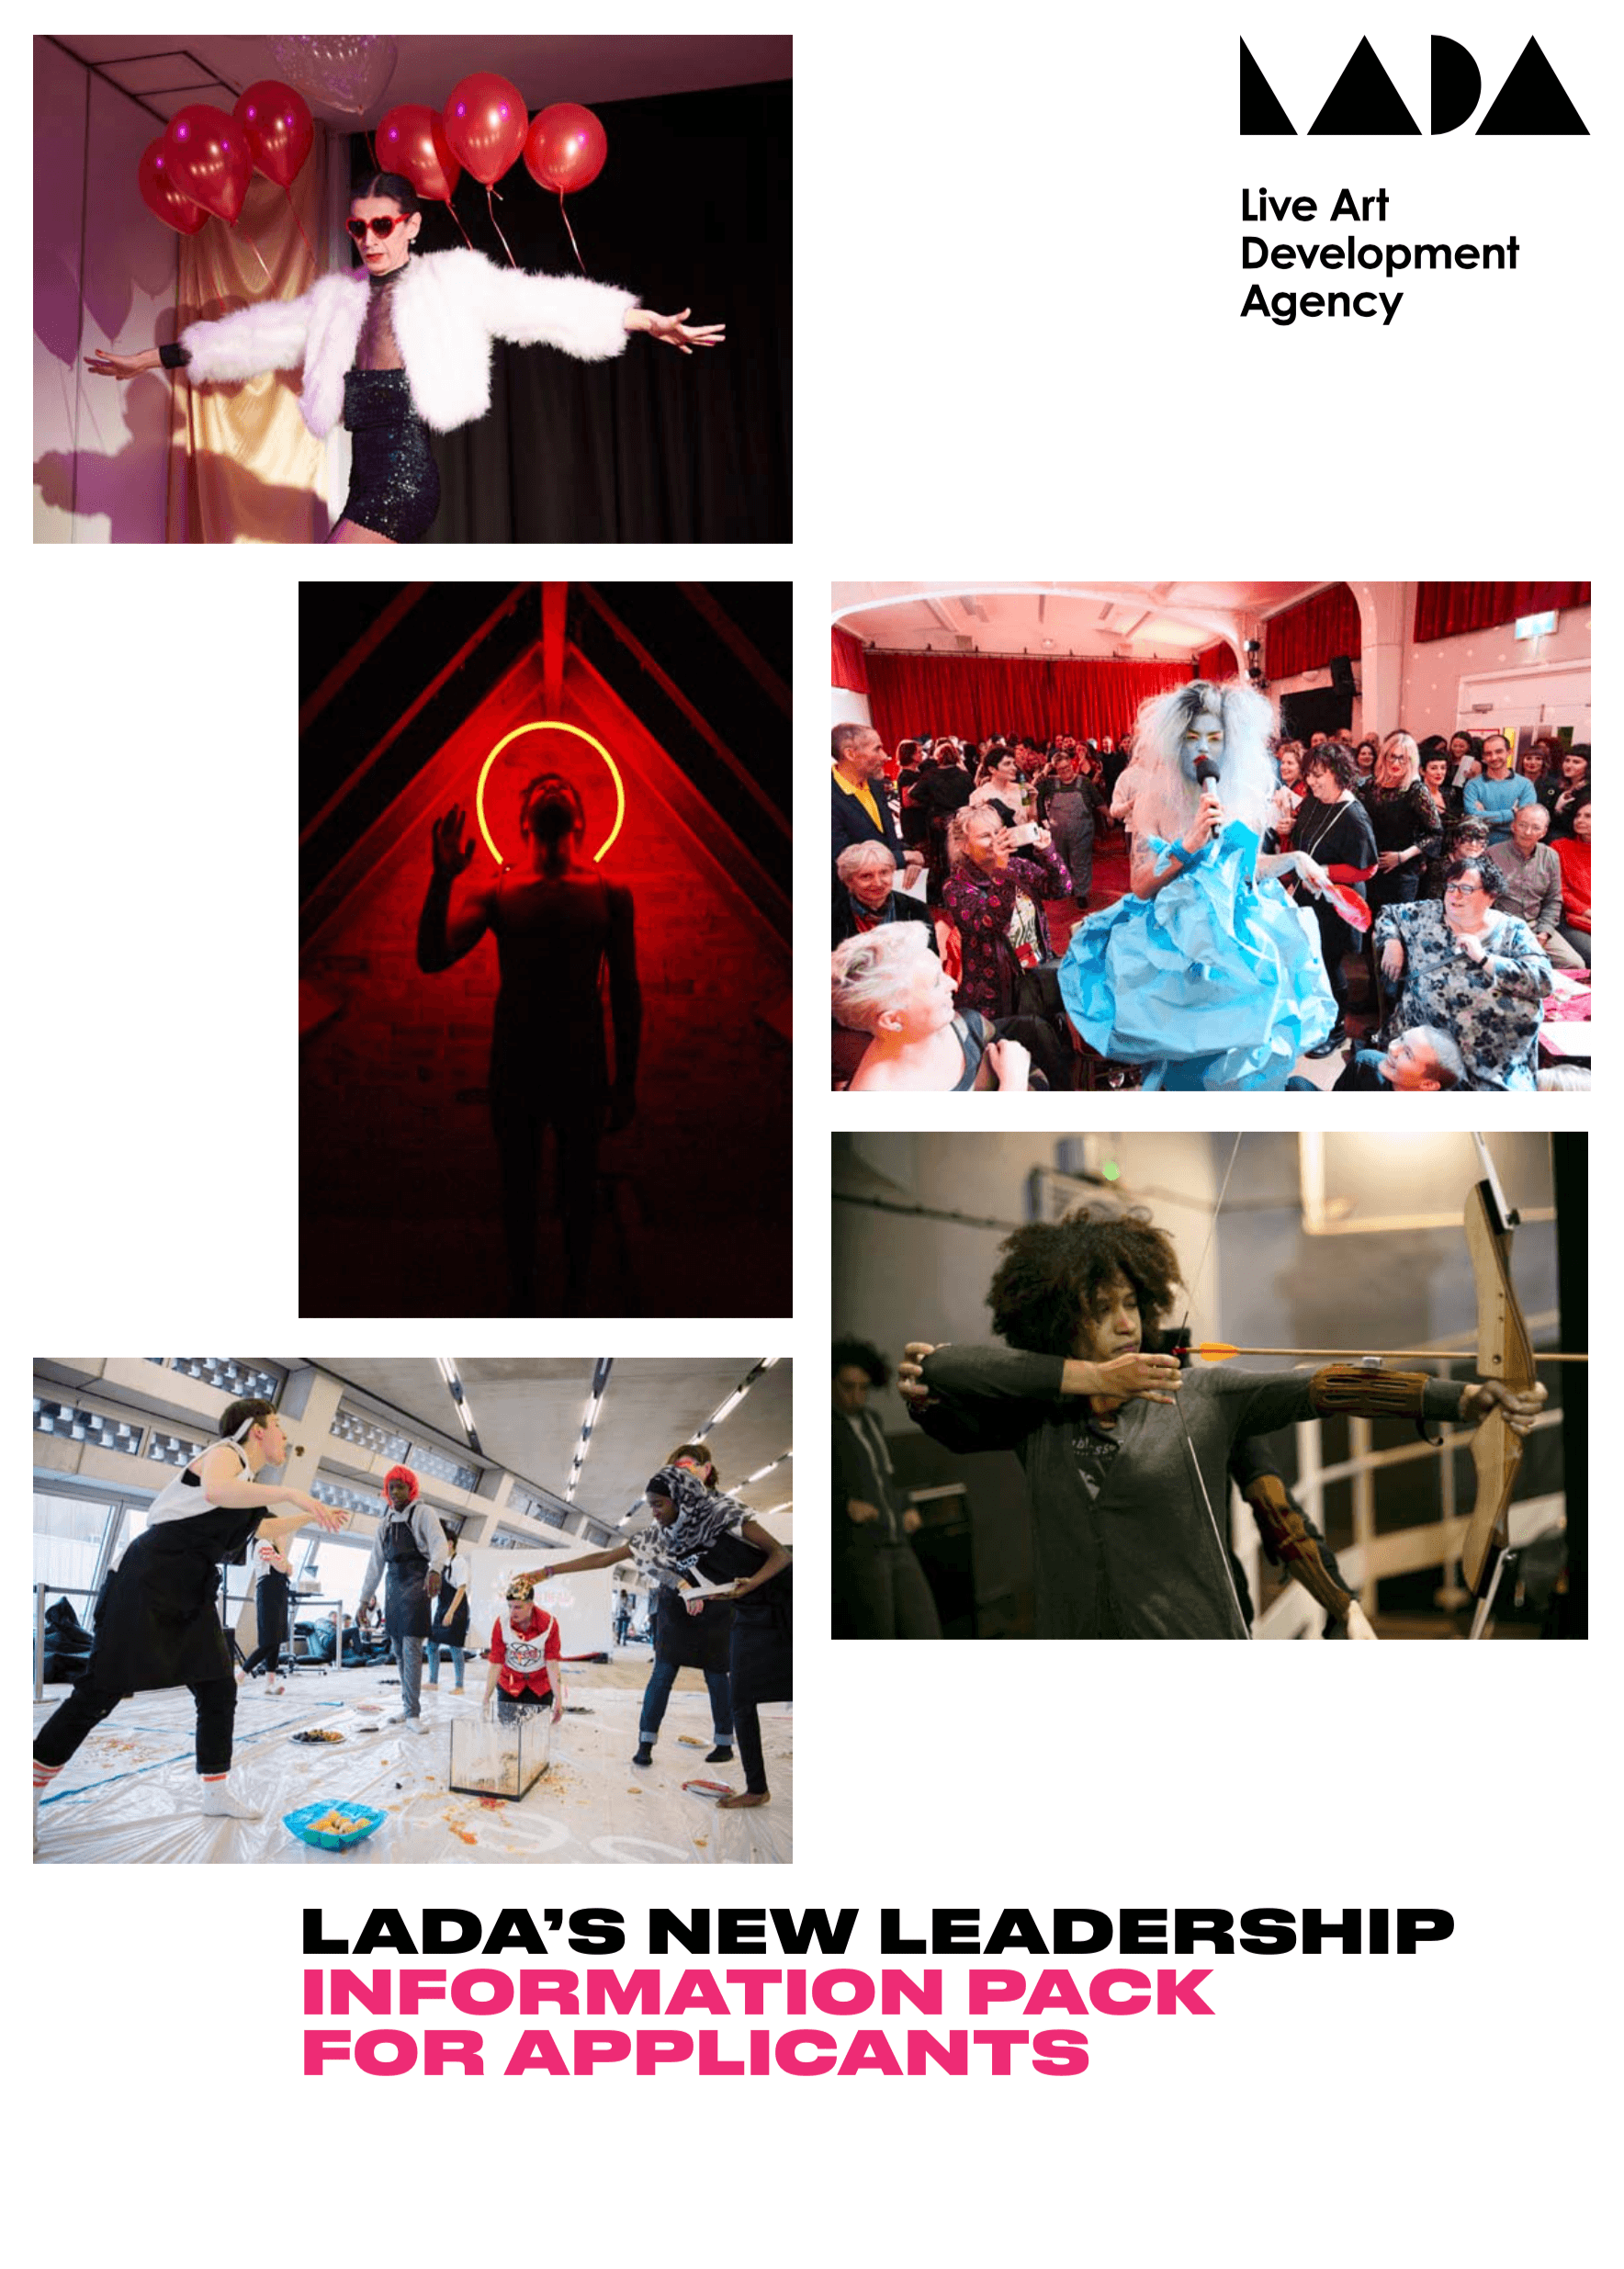 Images from LADA commissioned works and text 'LADA's new leadership'